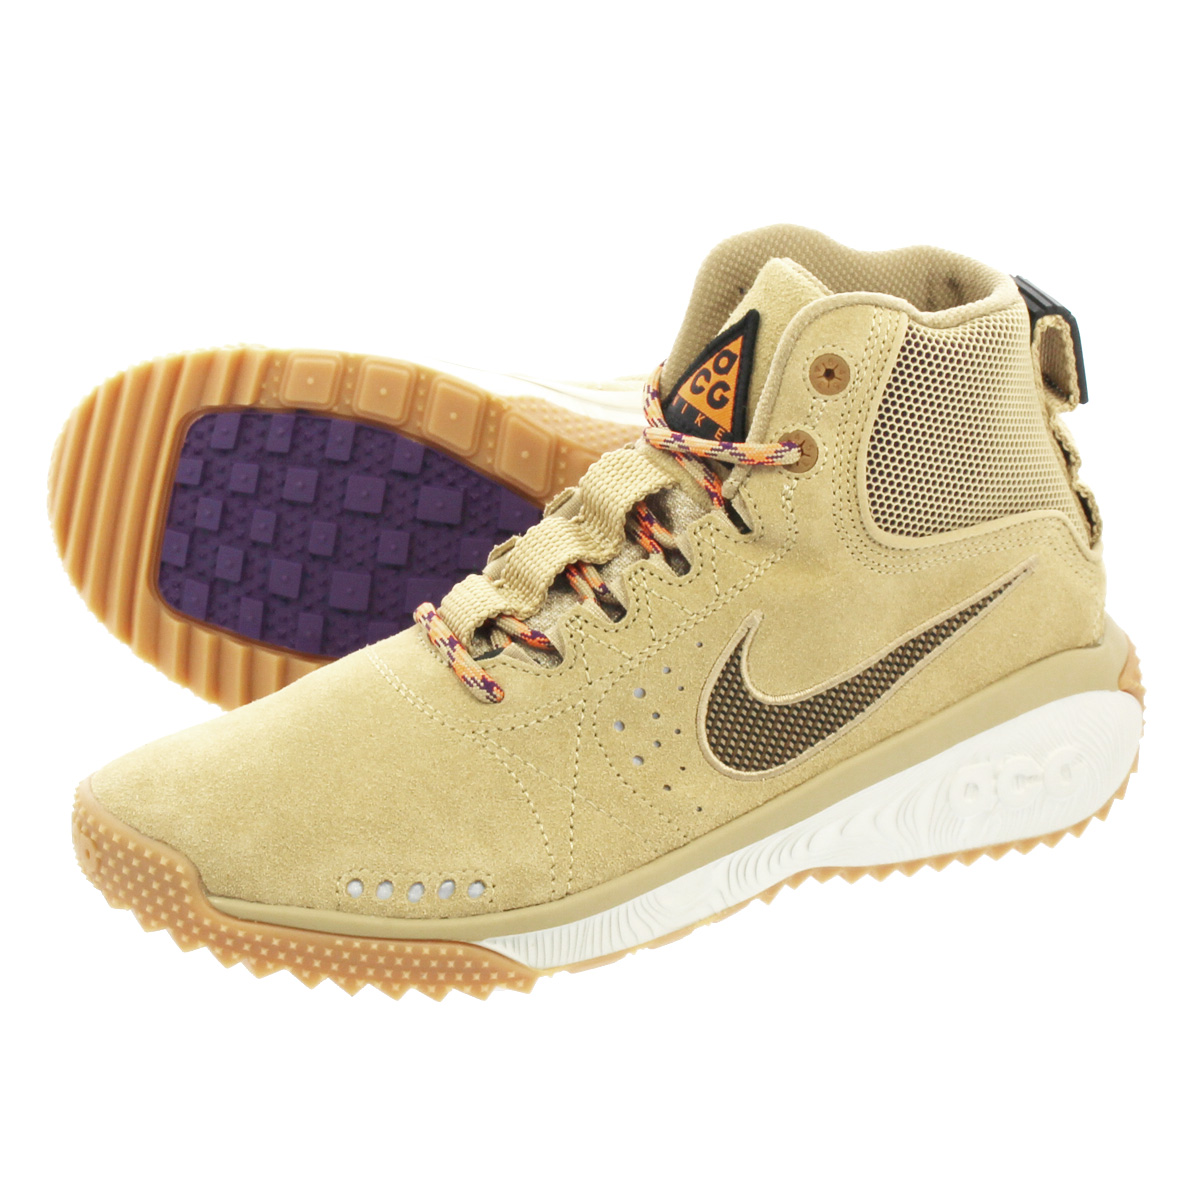 NIKE ACG ANGEL'S REST ナイキ ACG エンジェルズ レスト PARACHUTE BEIGE/LIGHT BONE/GUM LIGHT BROWN aq0917-200